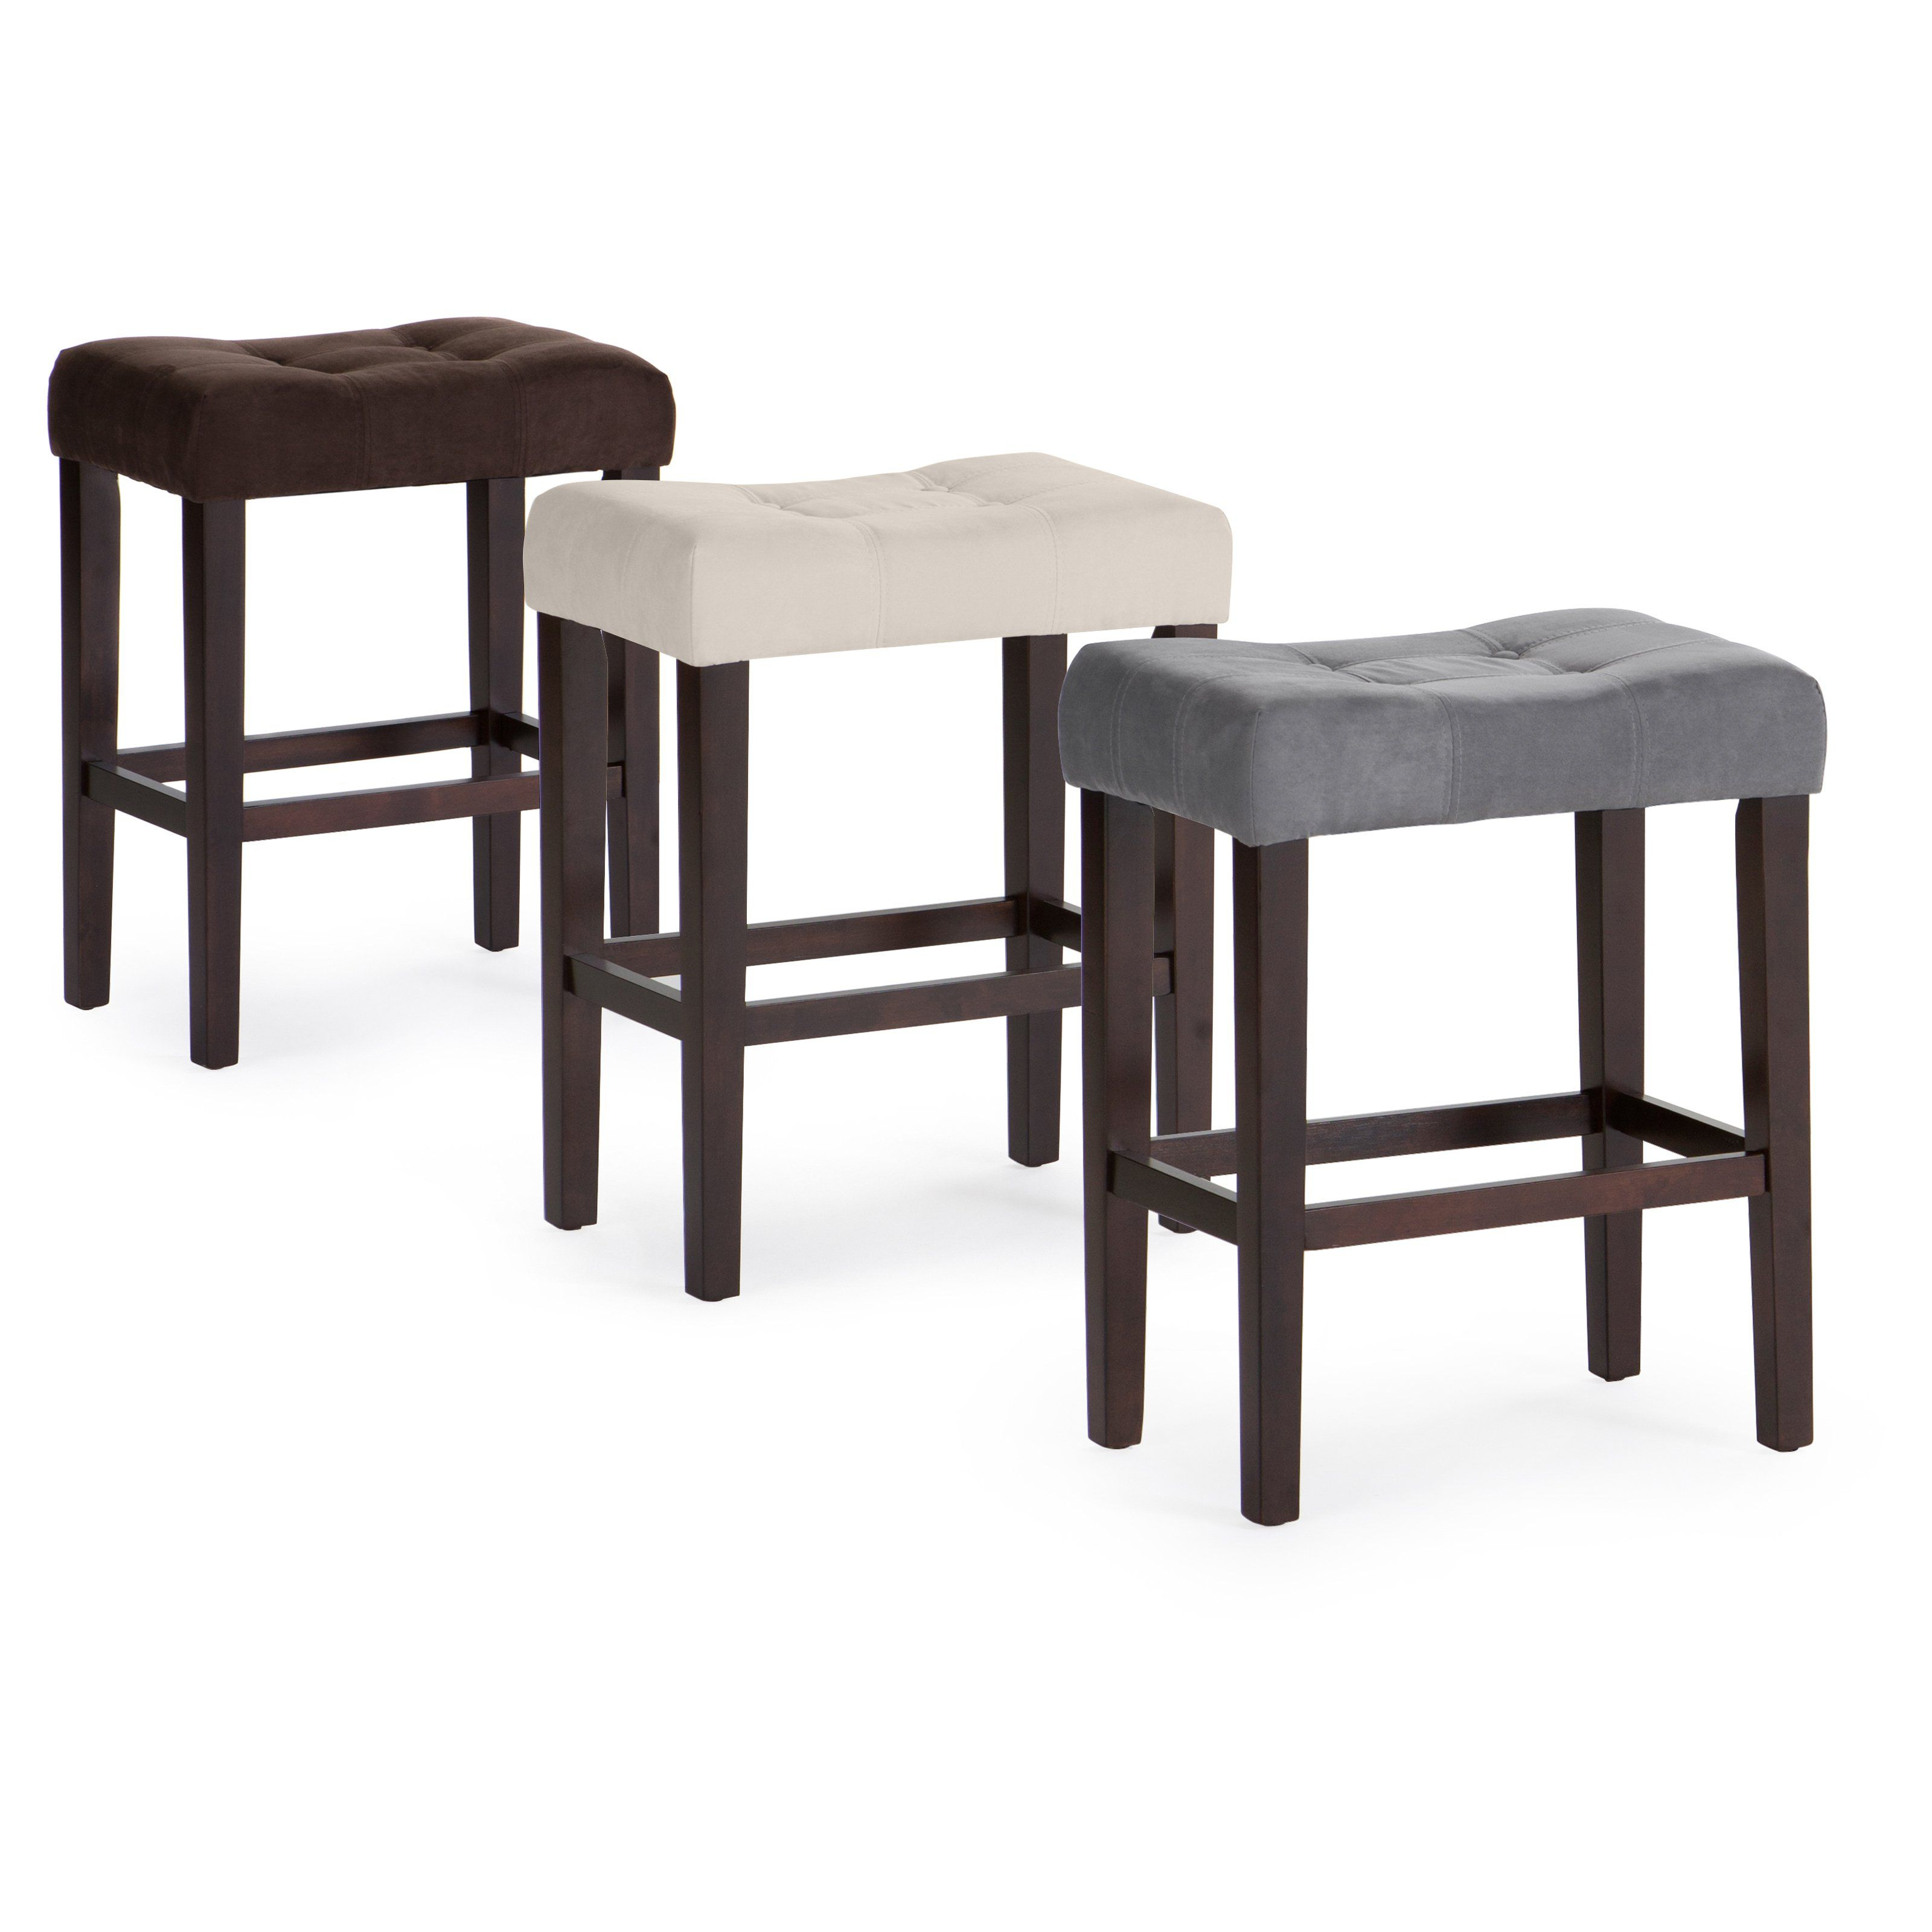 Palazzo 26 Inch Saddle Counter Stool   Casual Comfort And Contemporary  Style, The Palazzo 26 In. Saddle Stool   Light Beige Is Rich In Both.